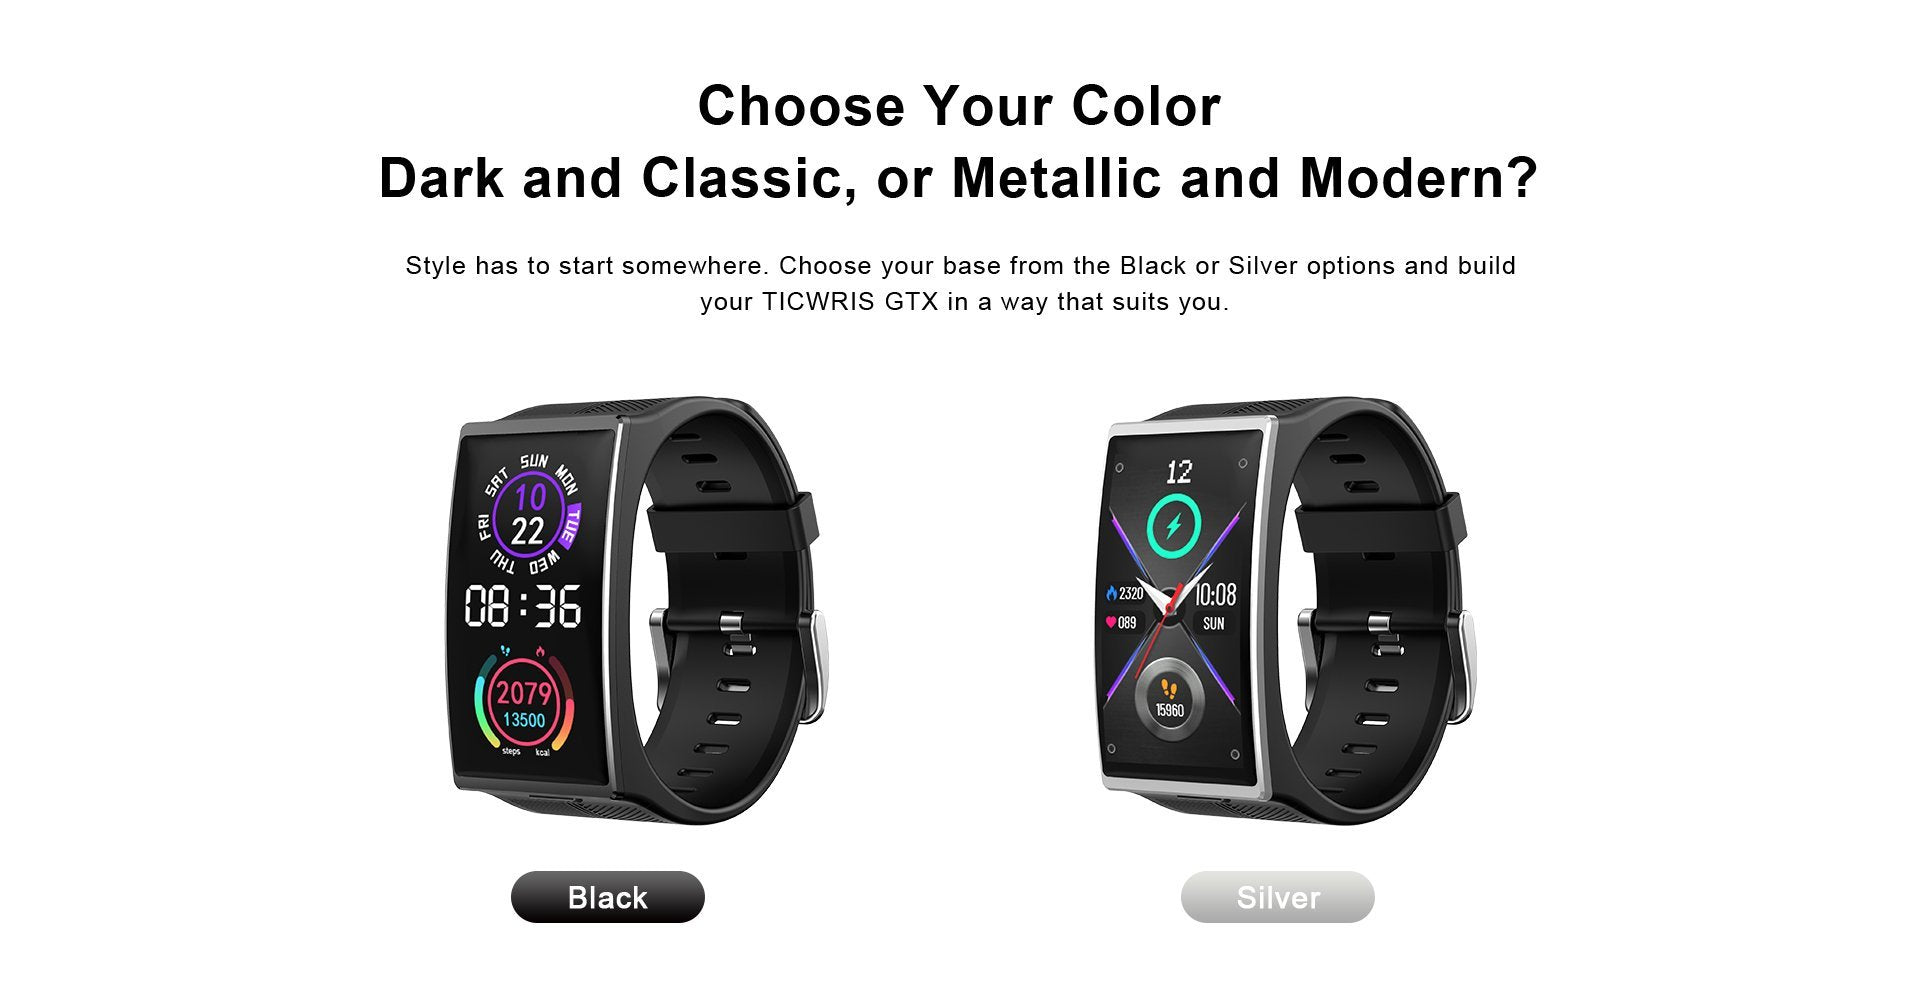 two colors options